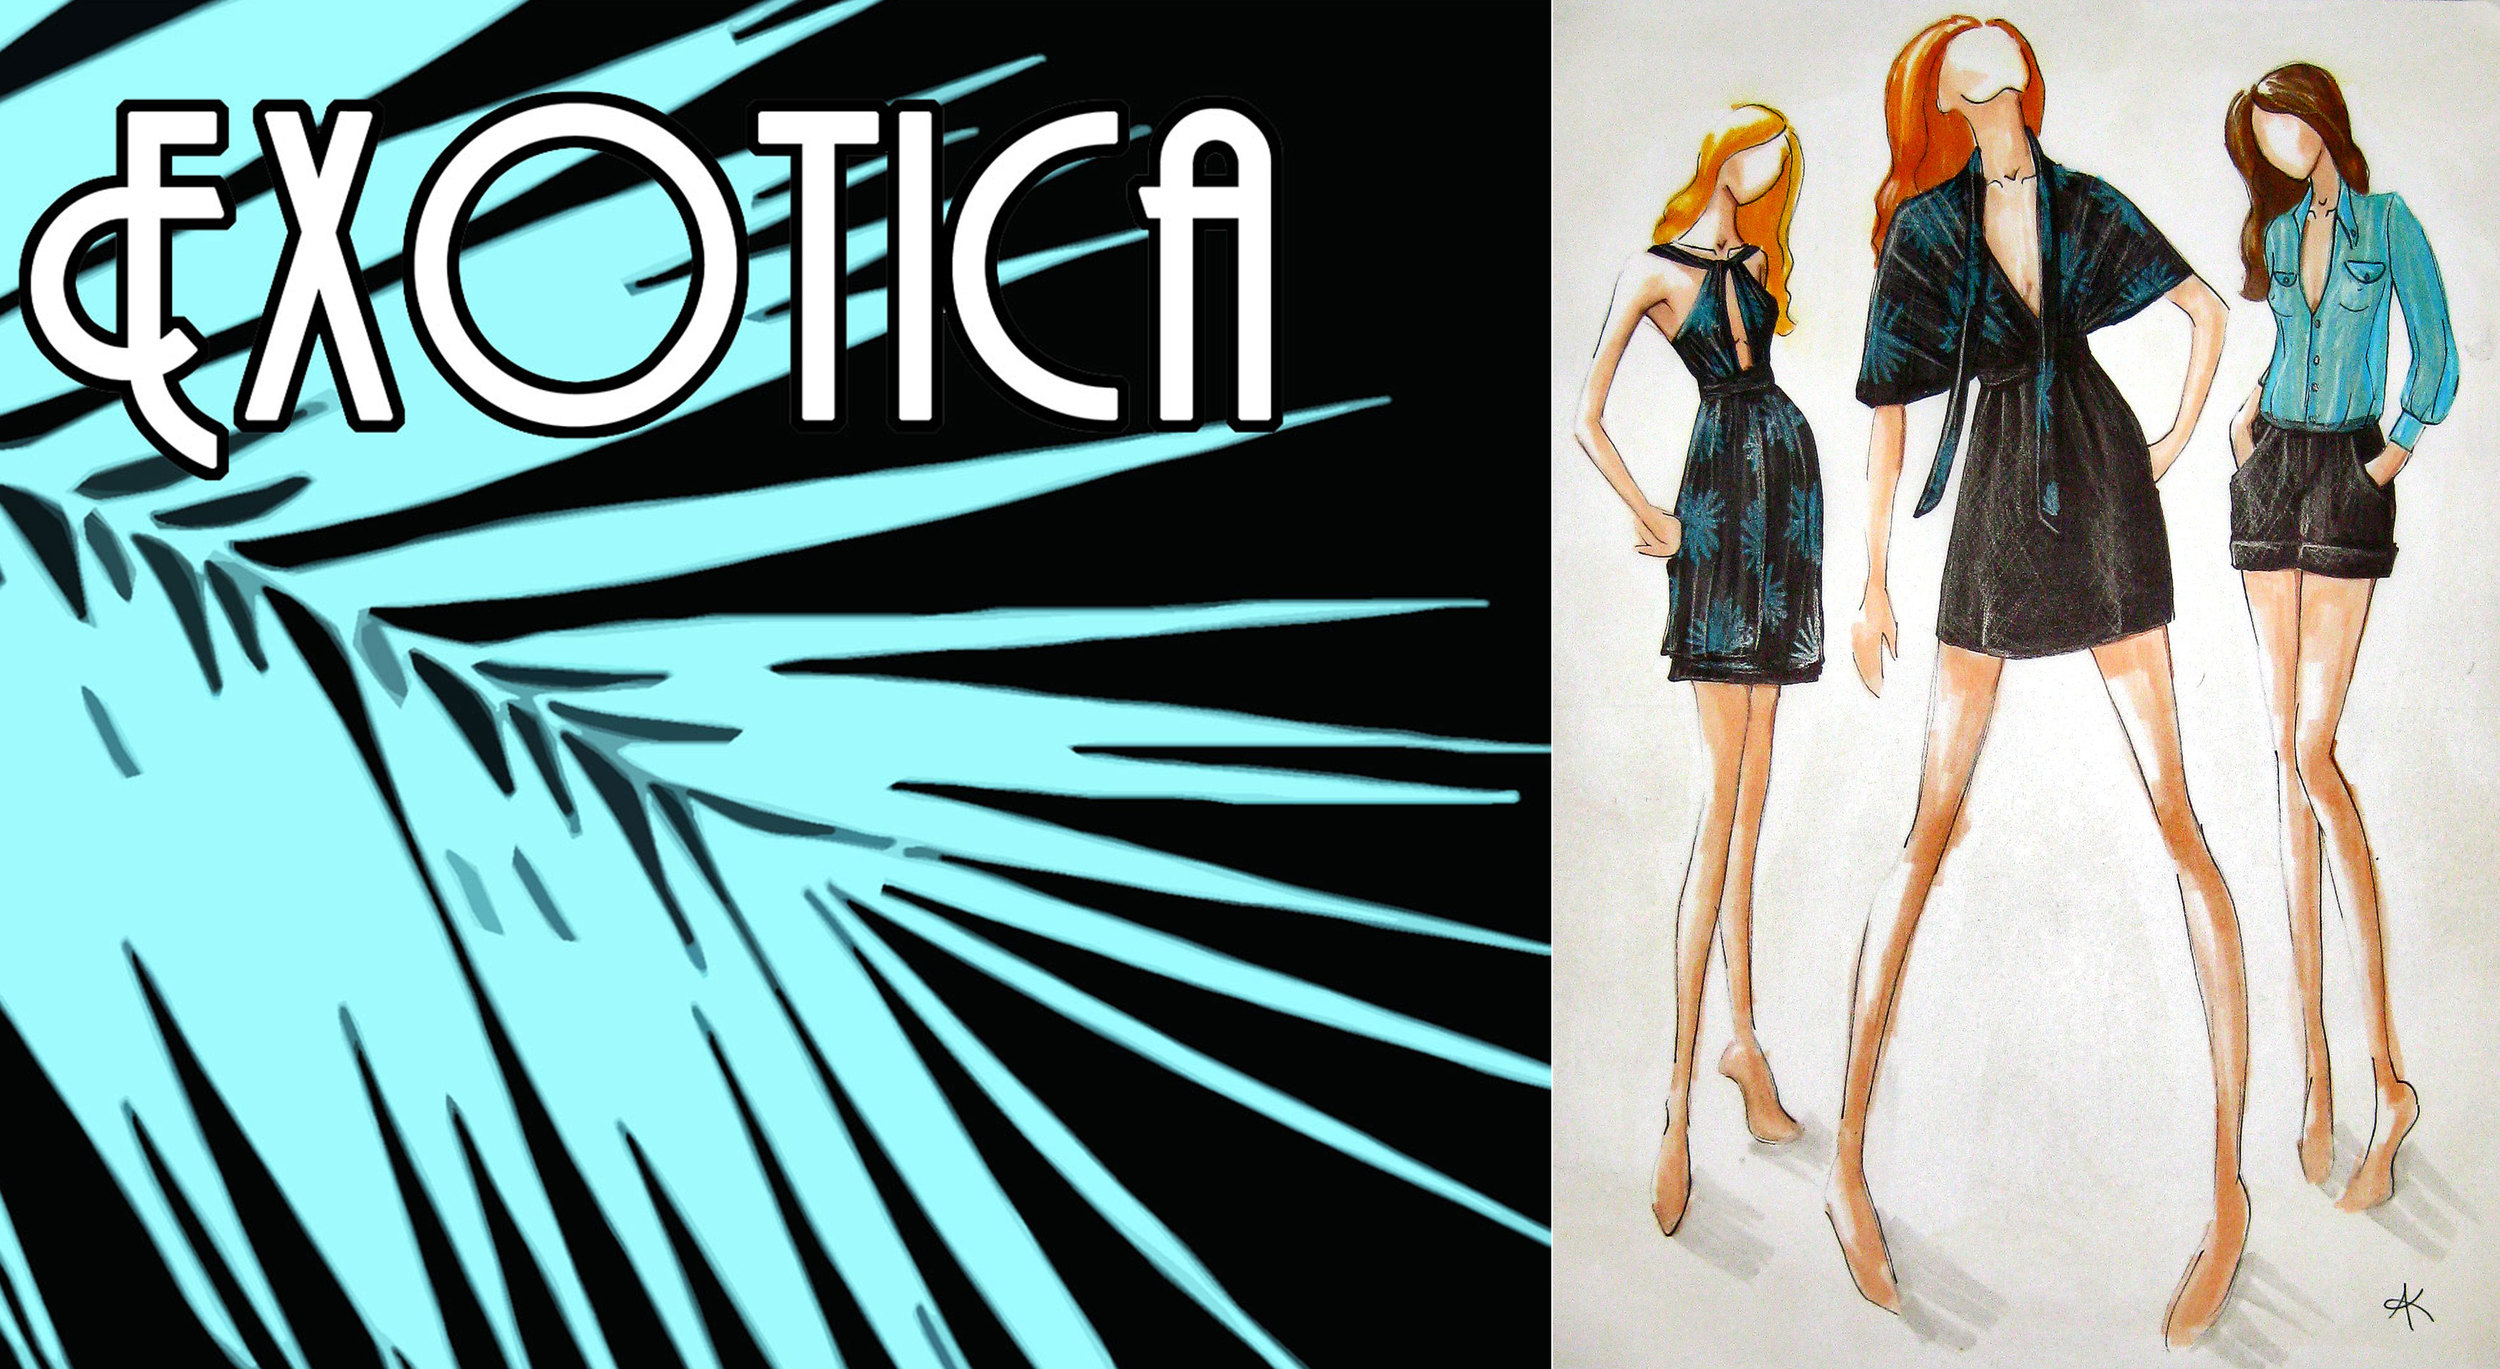 EXOTICA-MB-SKETCHES.jpg